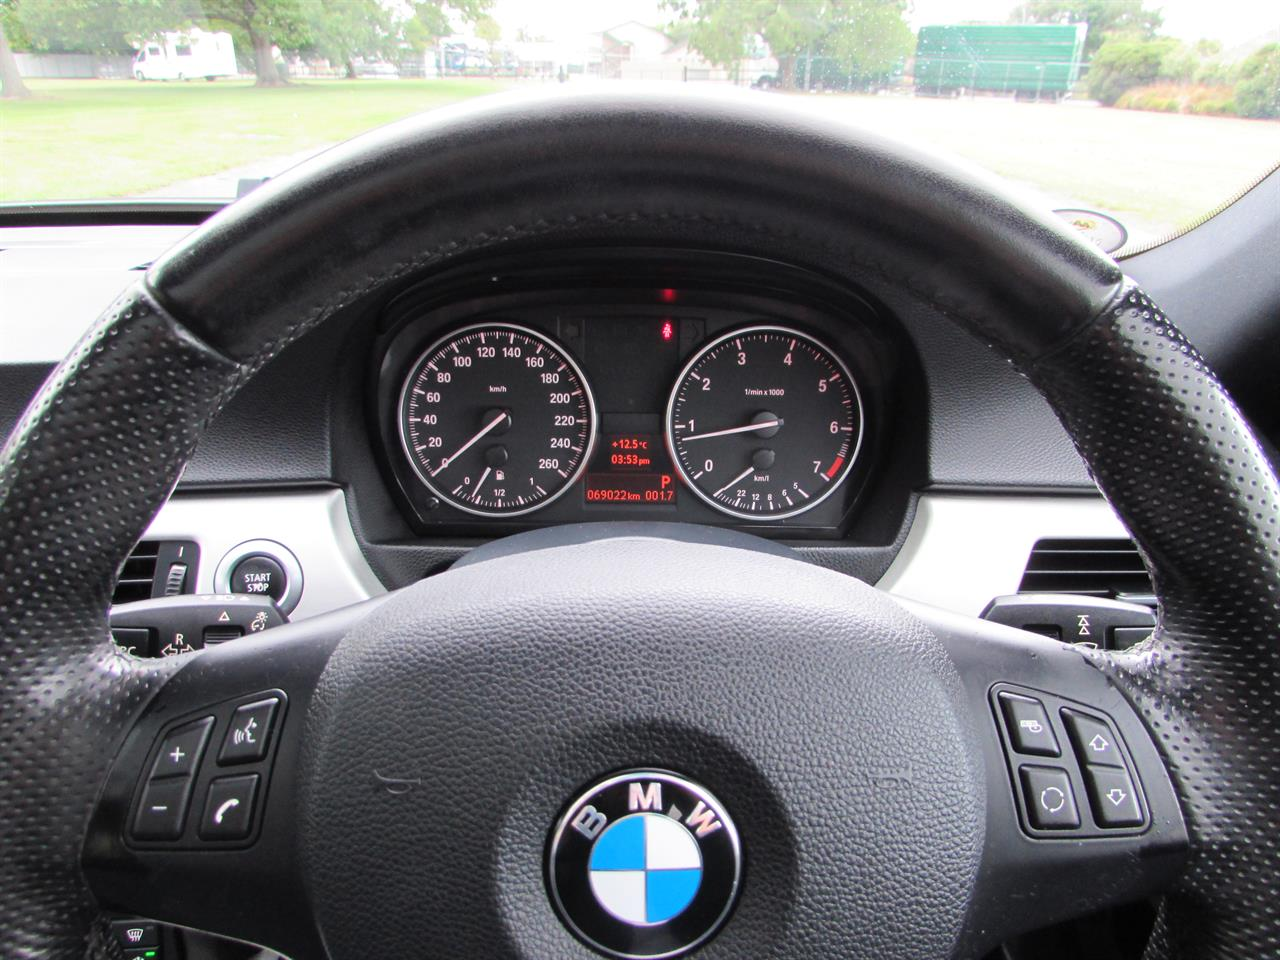 2008 BMW 320I | only $55 weekly